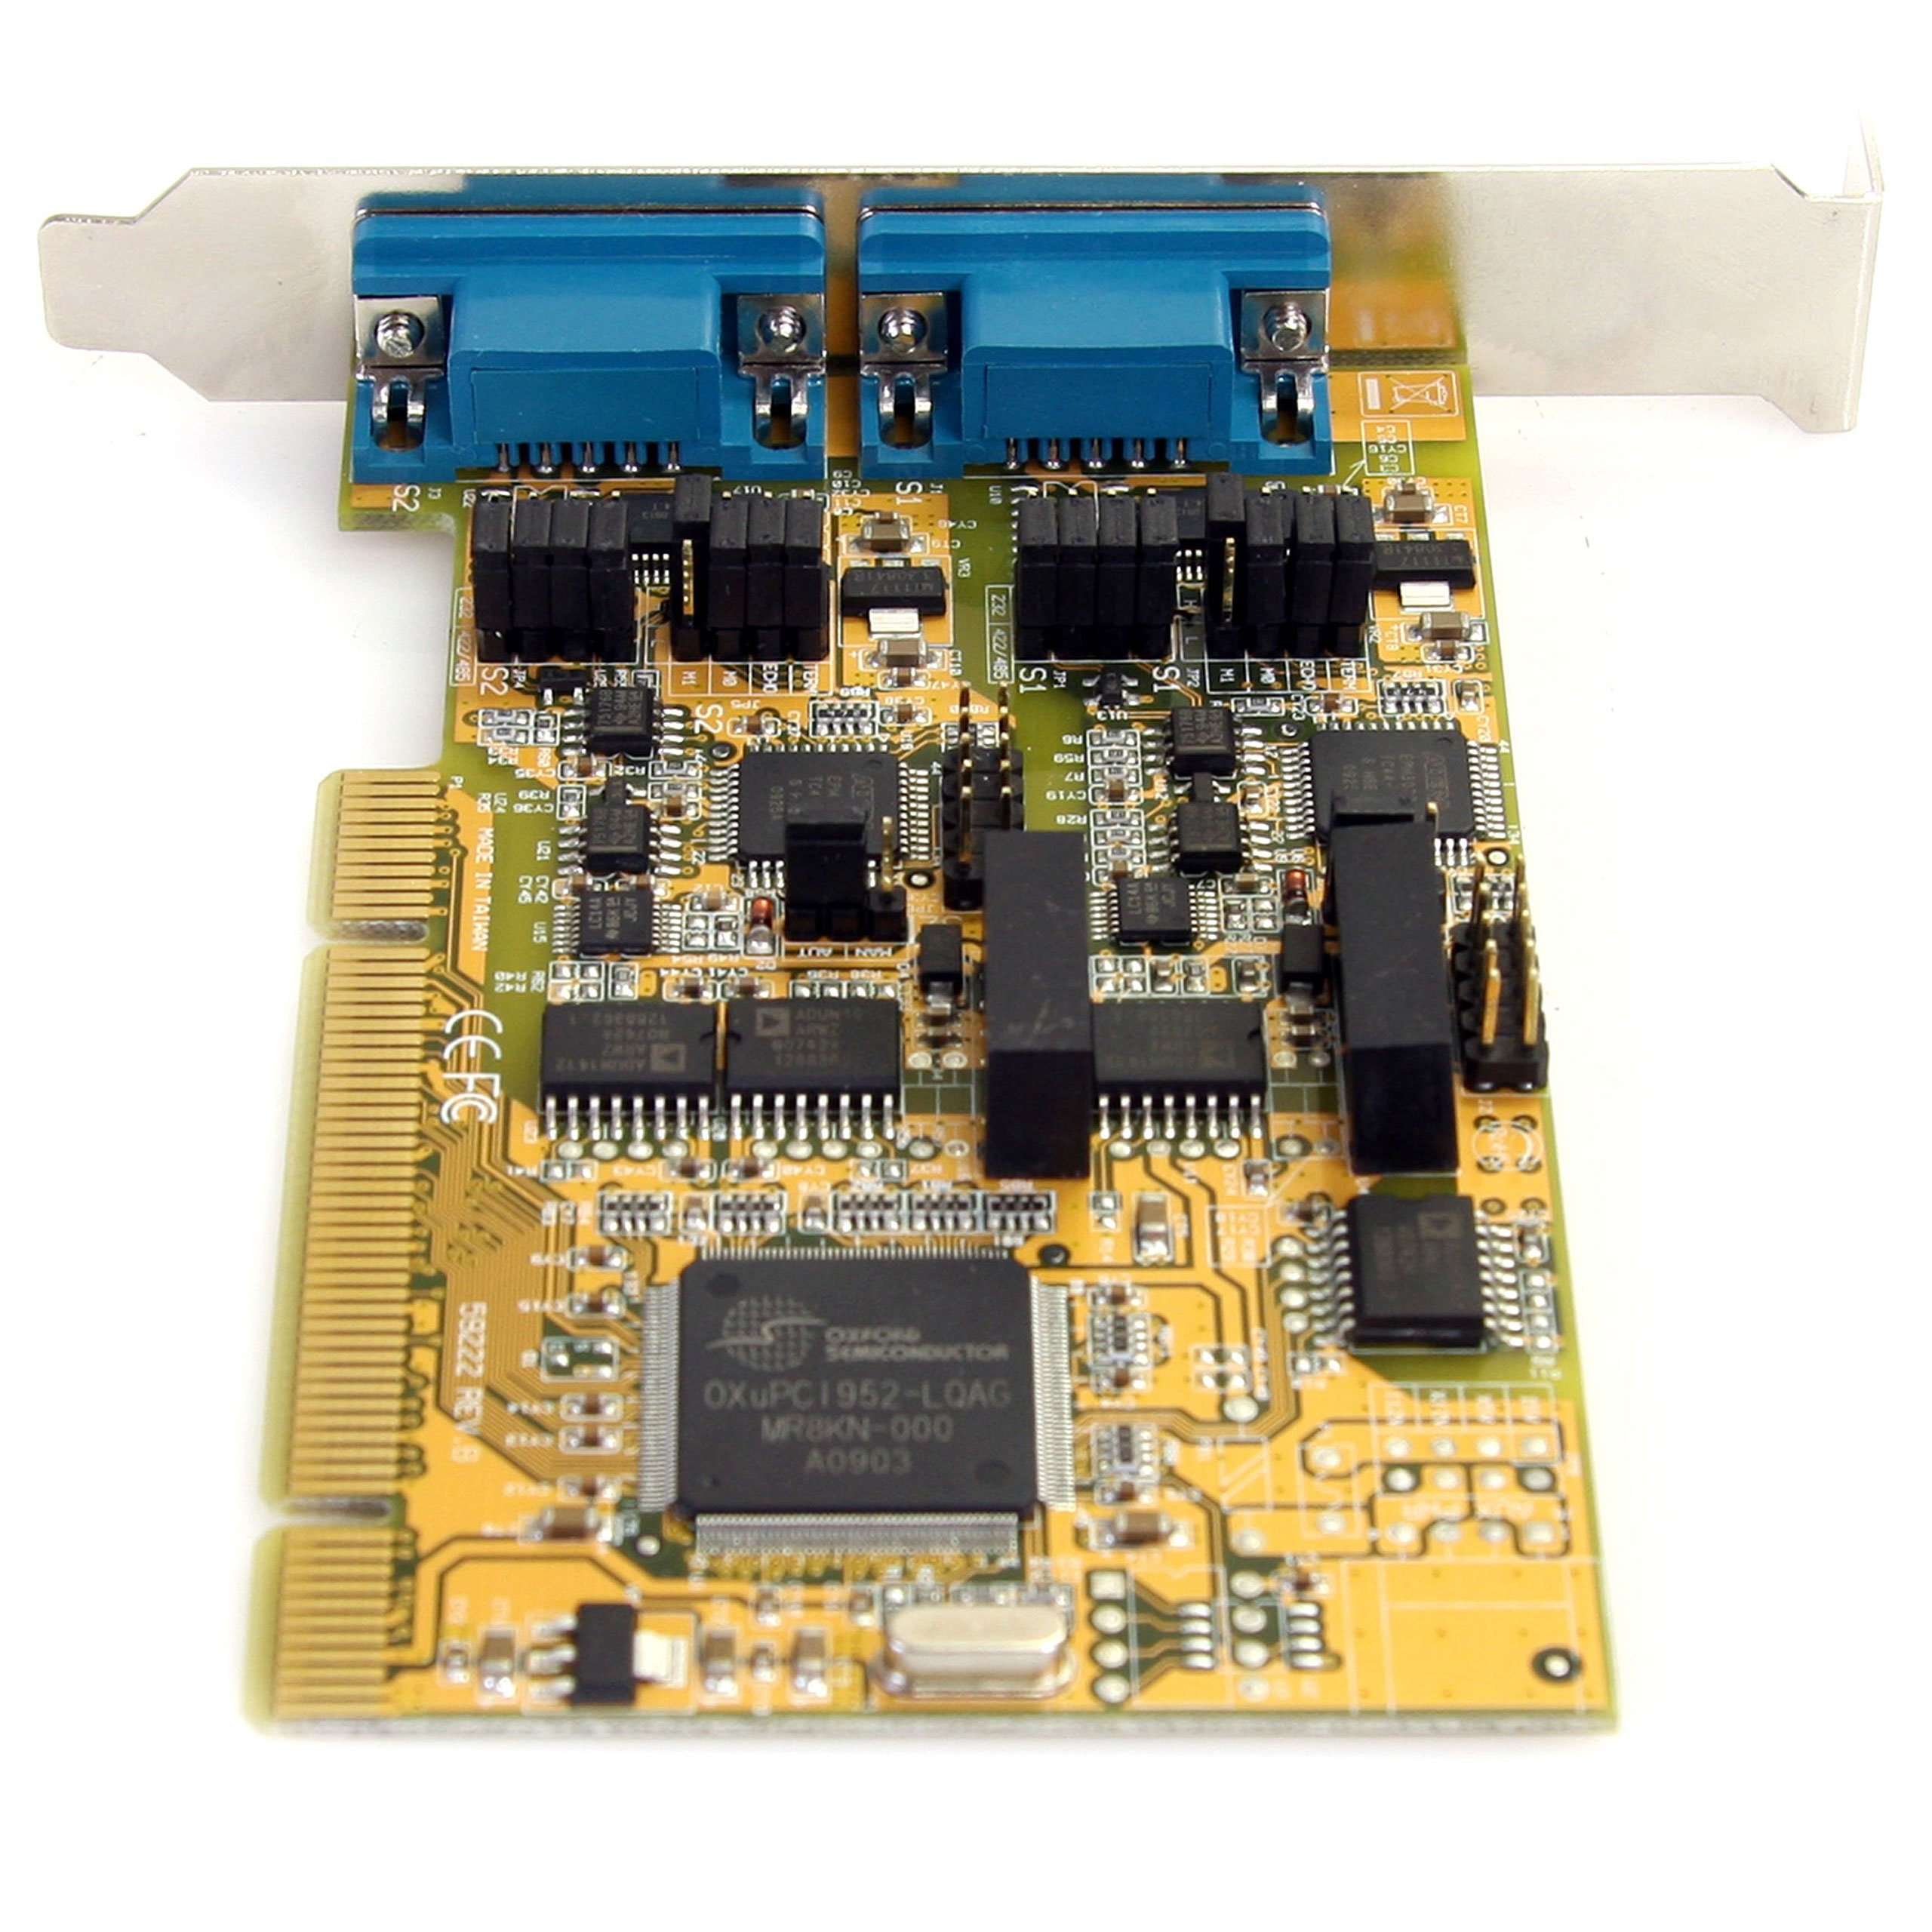 StarTech.com PCI2S232485I 2 Port RS232/422/485 PCI Serial Adapter Card with ESD Protection by StarTech (Image #4)